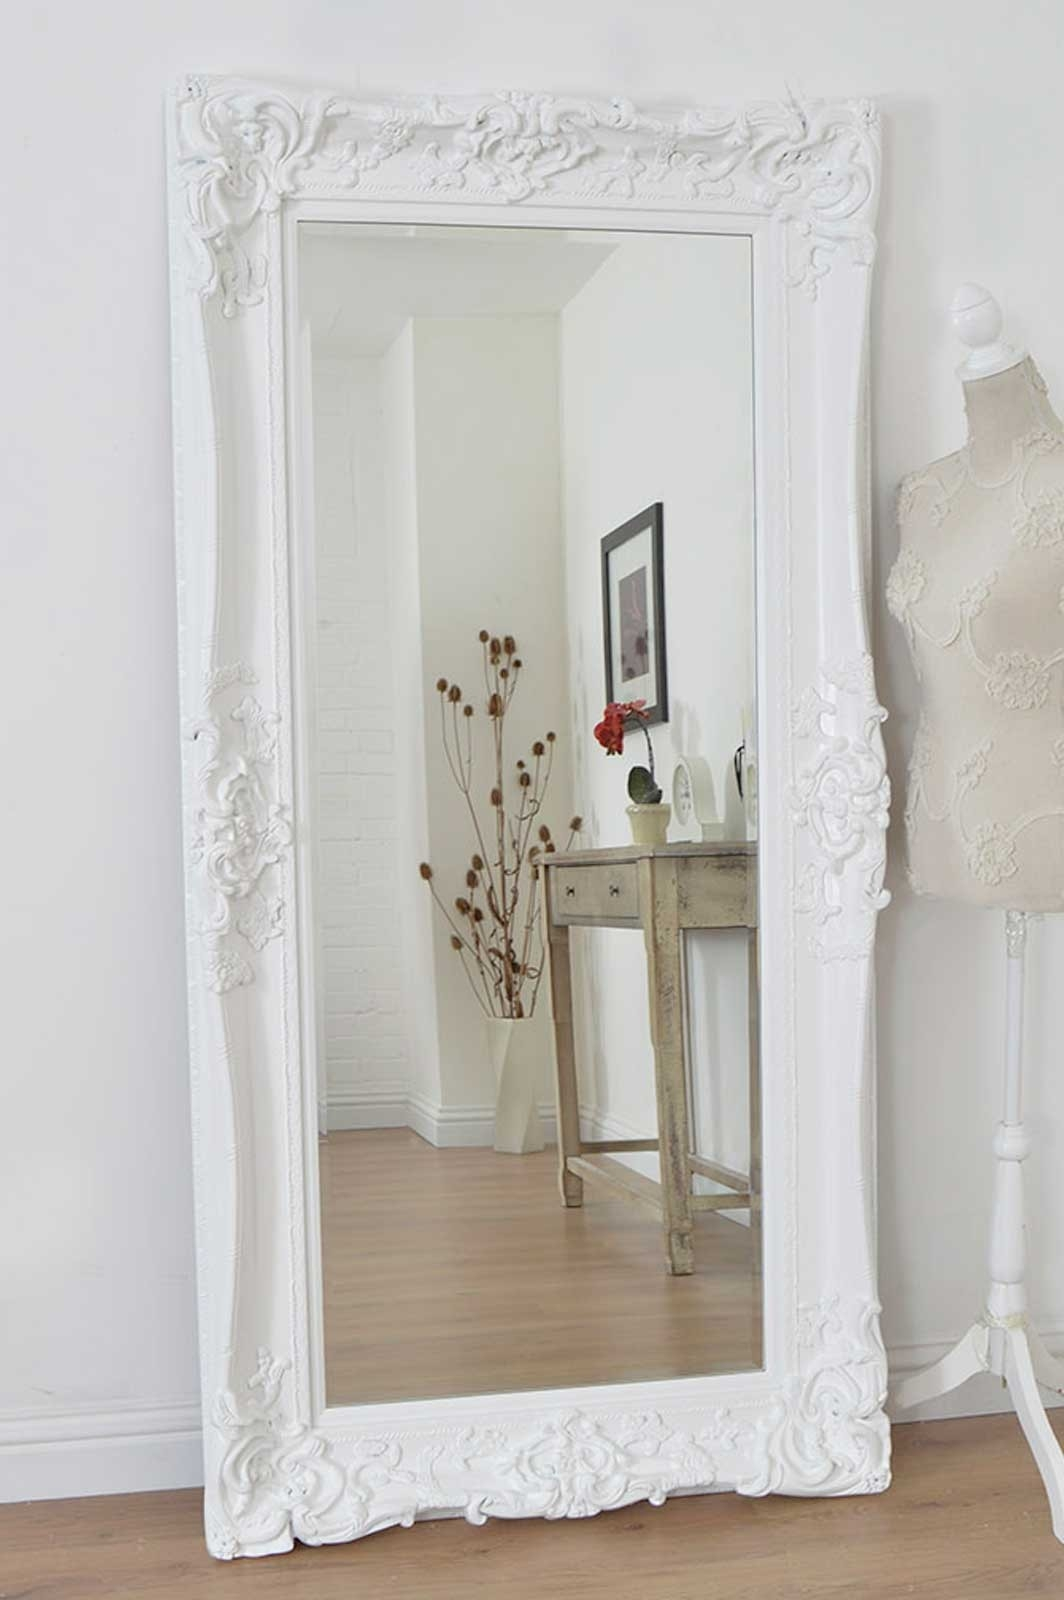 Large White Mirrors For Walls Mirror Design Ideas Inside Large Ornate Wall Mirror (Image 10 of 15)